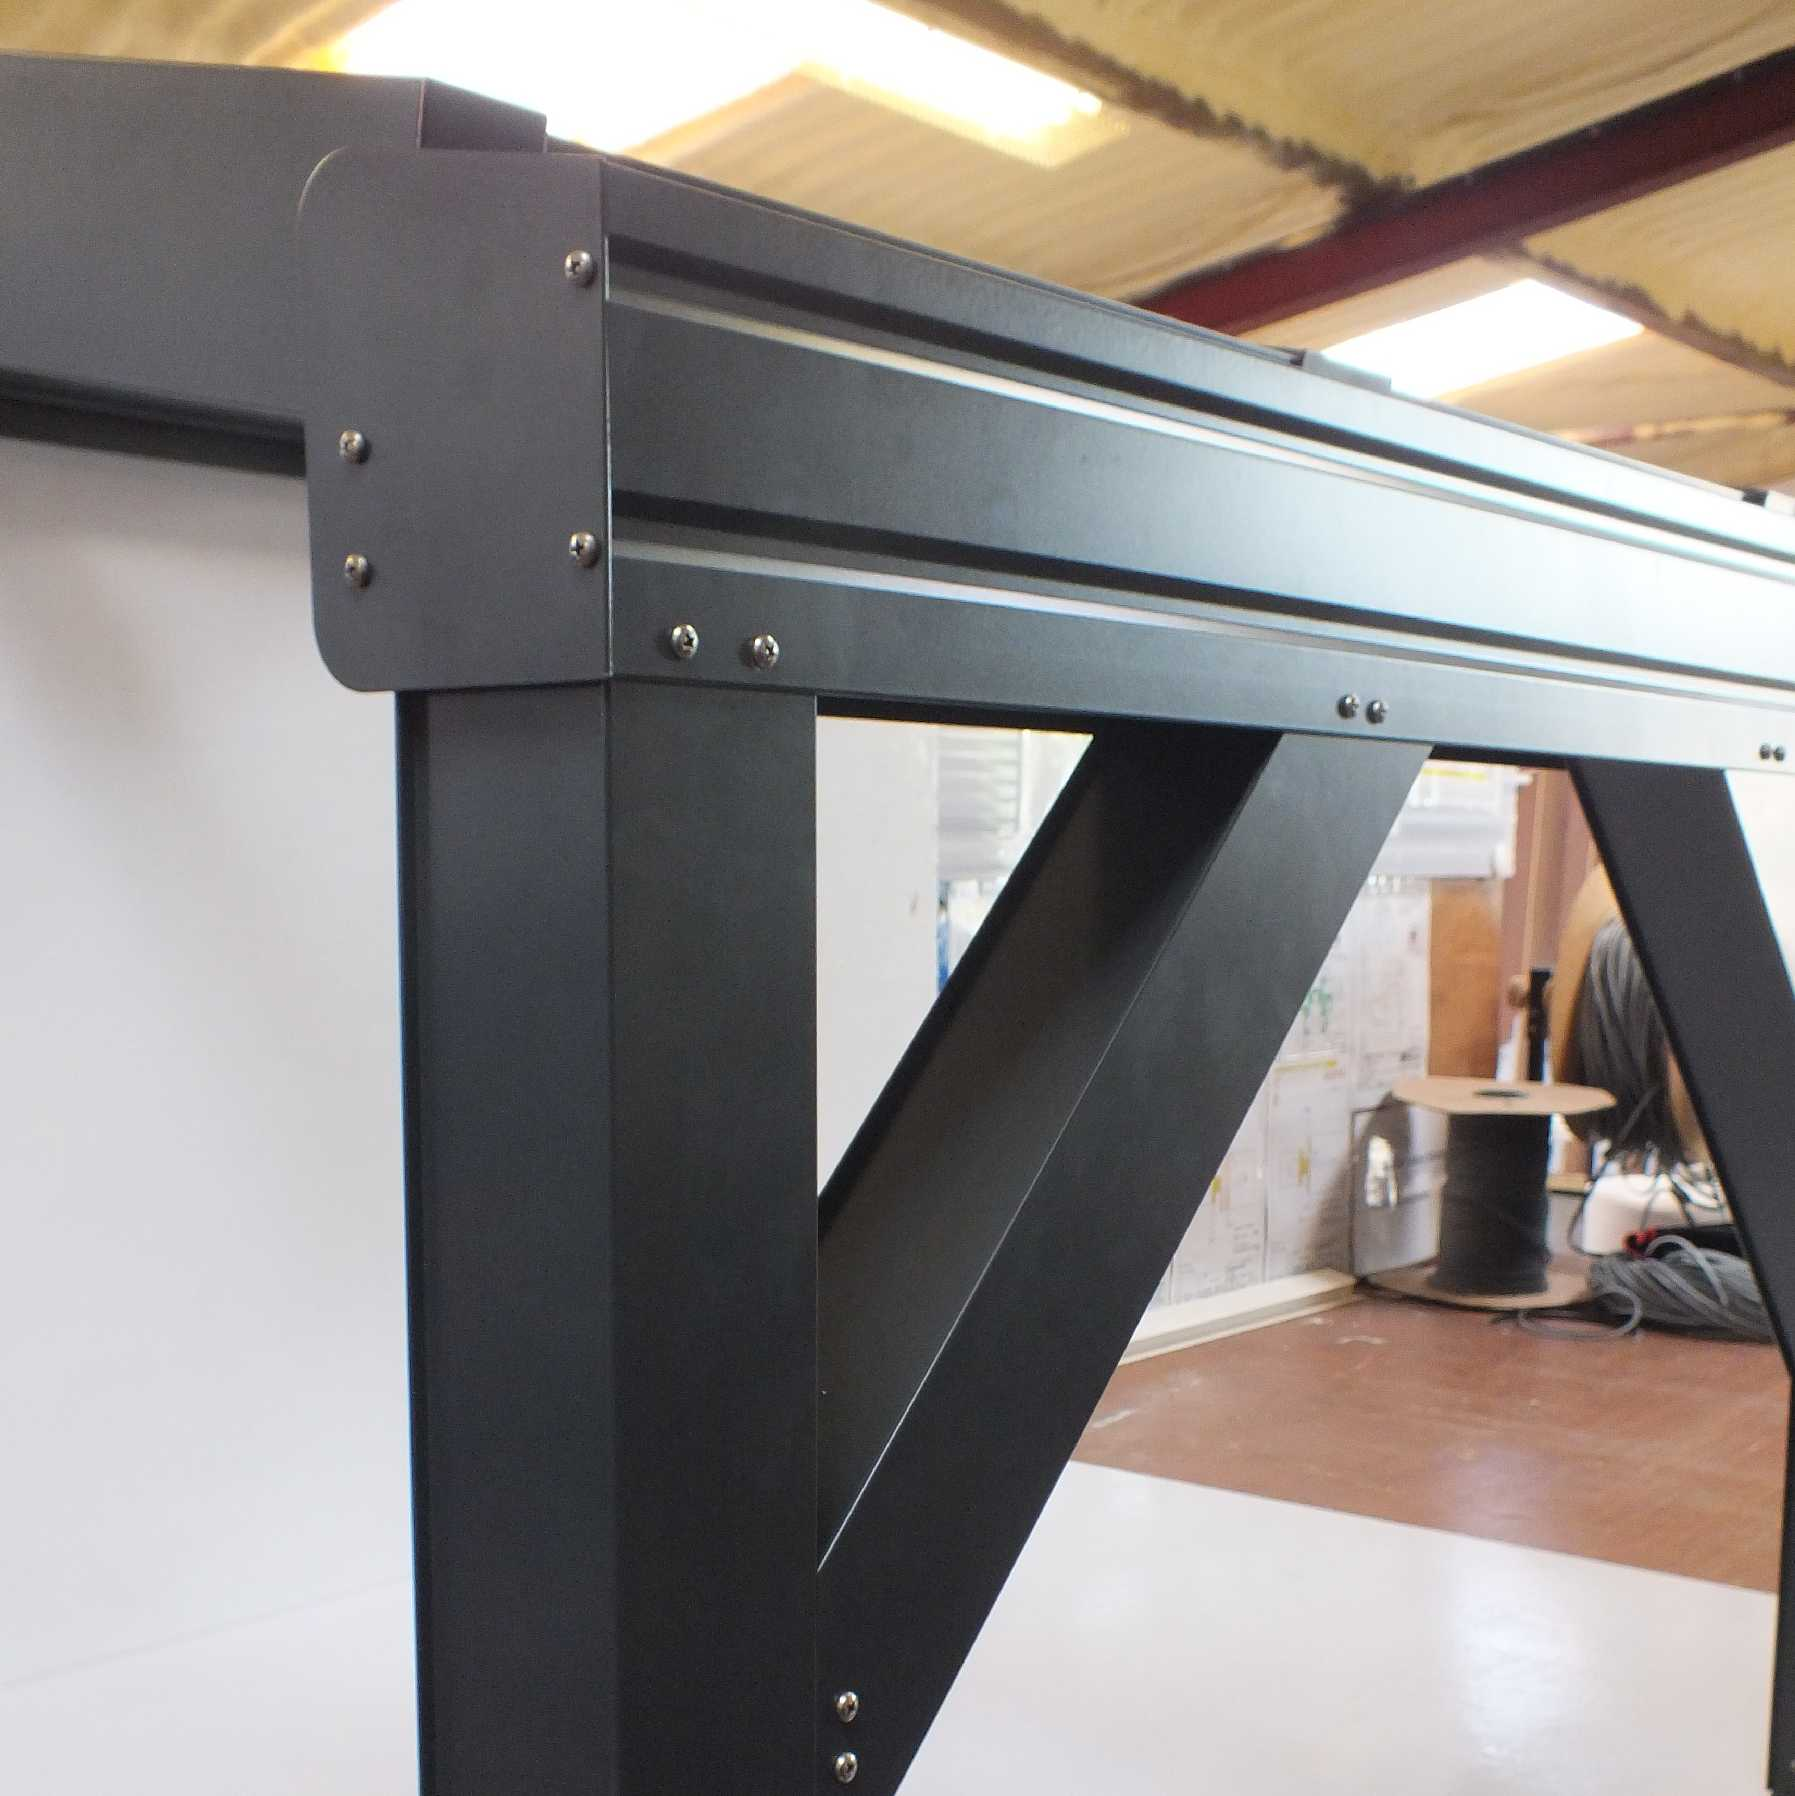 Omega Smart Lean-To Canopy, Anthracite Grey, UNGLAZED for 6mm Glazing - 2.8m (W) x 2.0m (P), (2) Supporting Posts from Omega Build